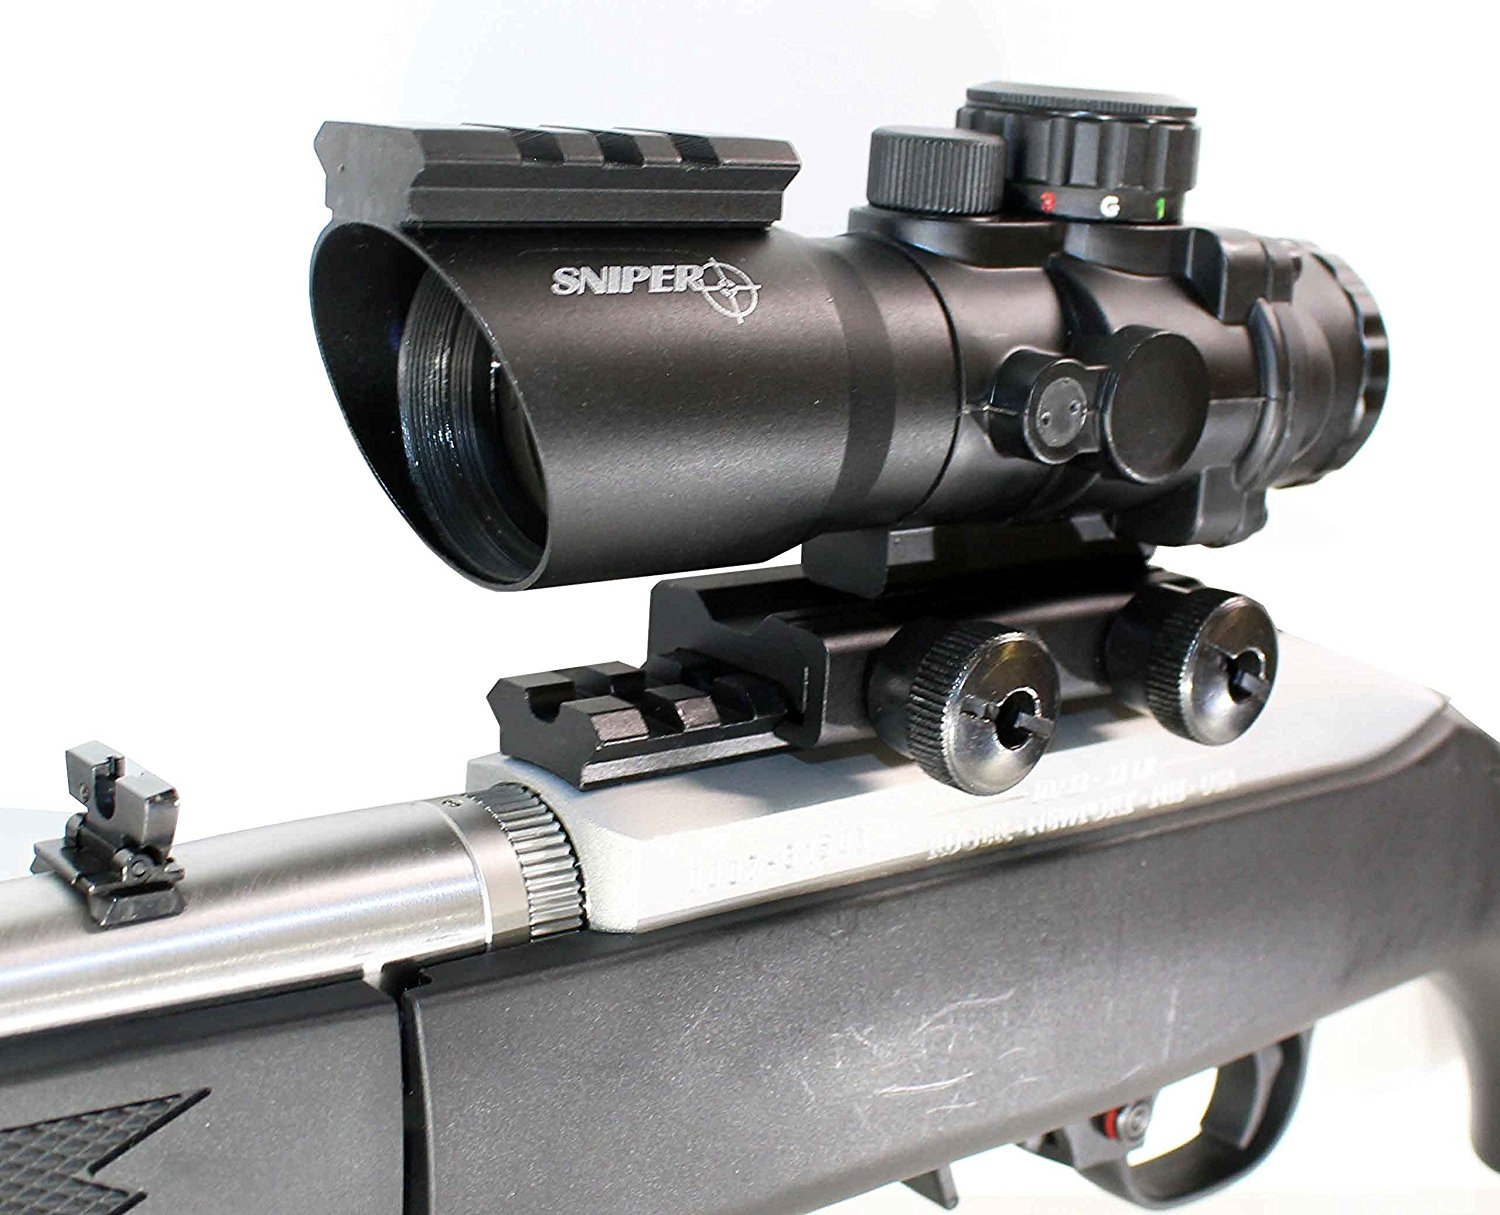 Trinity hunting scope 4x32 with base for ruger model 1022 rifle mildot reticle.